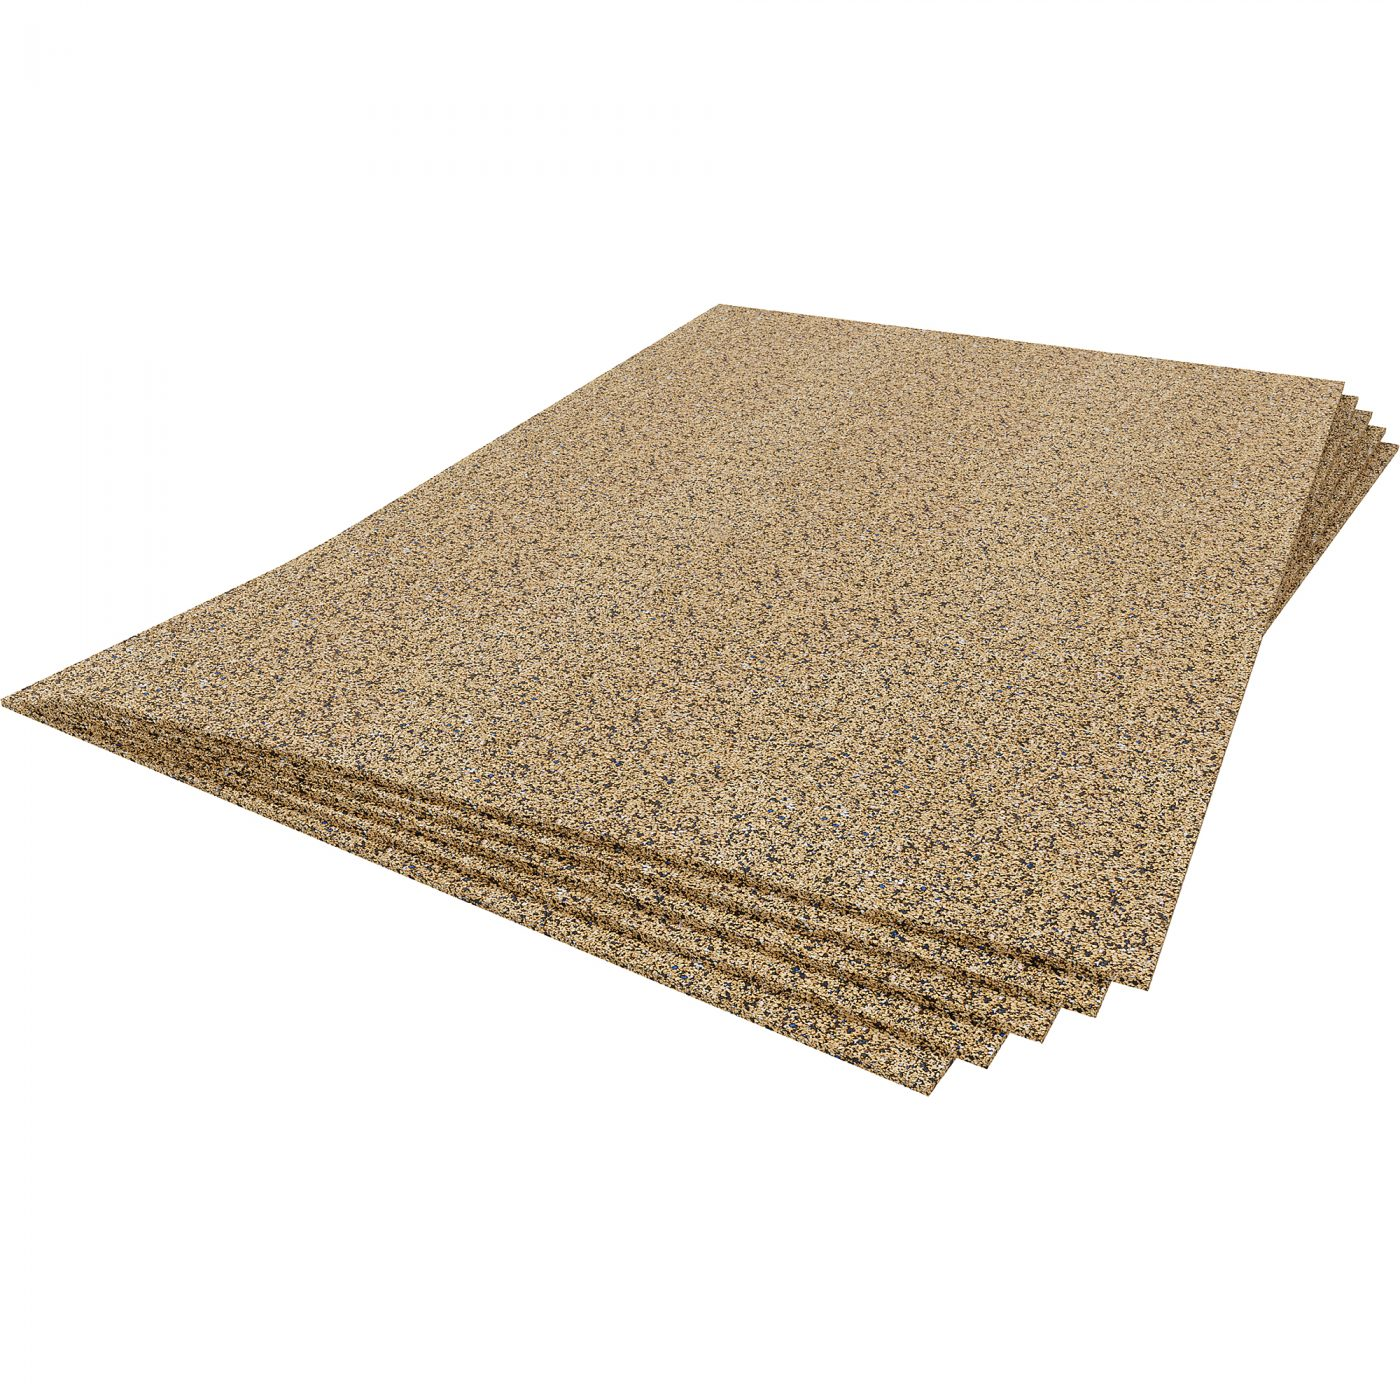 Cork Plus Underlayment